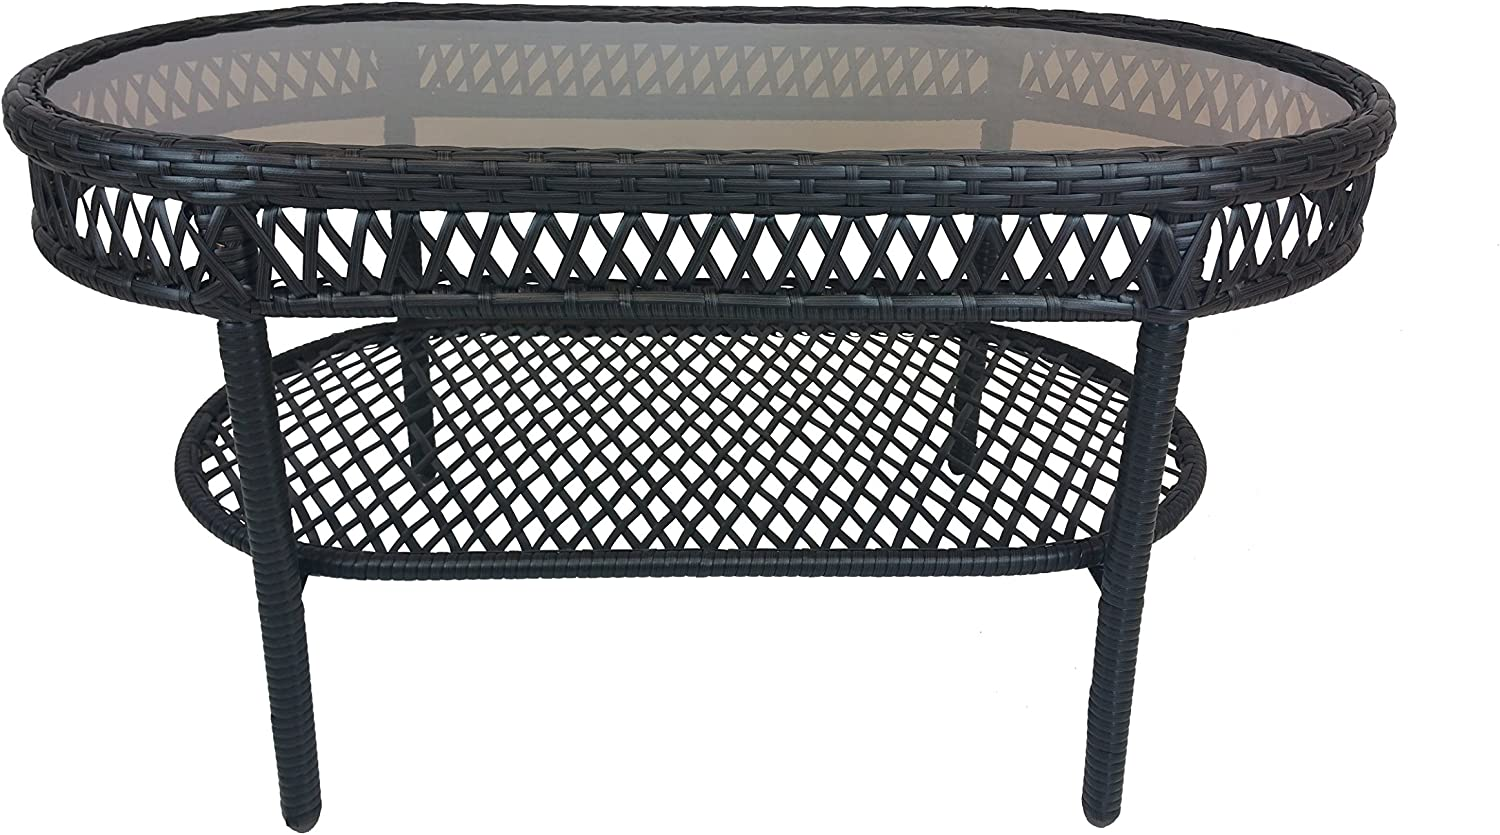 Oakland Living Elite Resin Wicker Coffee Table, 37.5 by 20-Inch : Garden & Outdoor